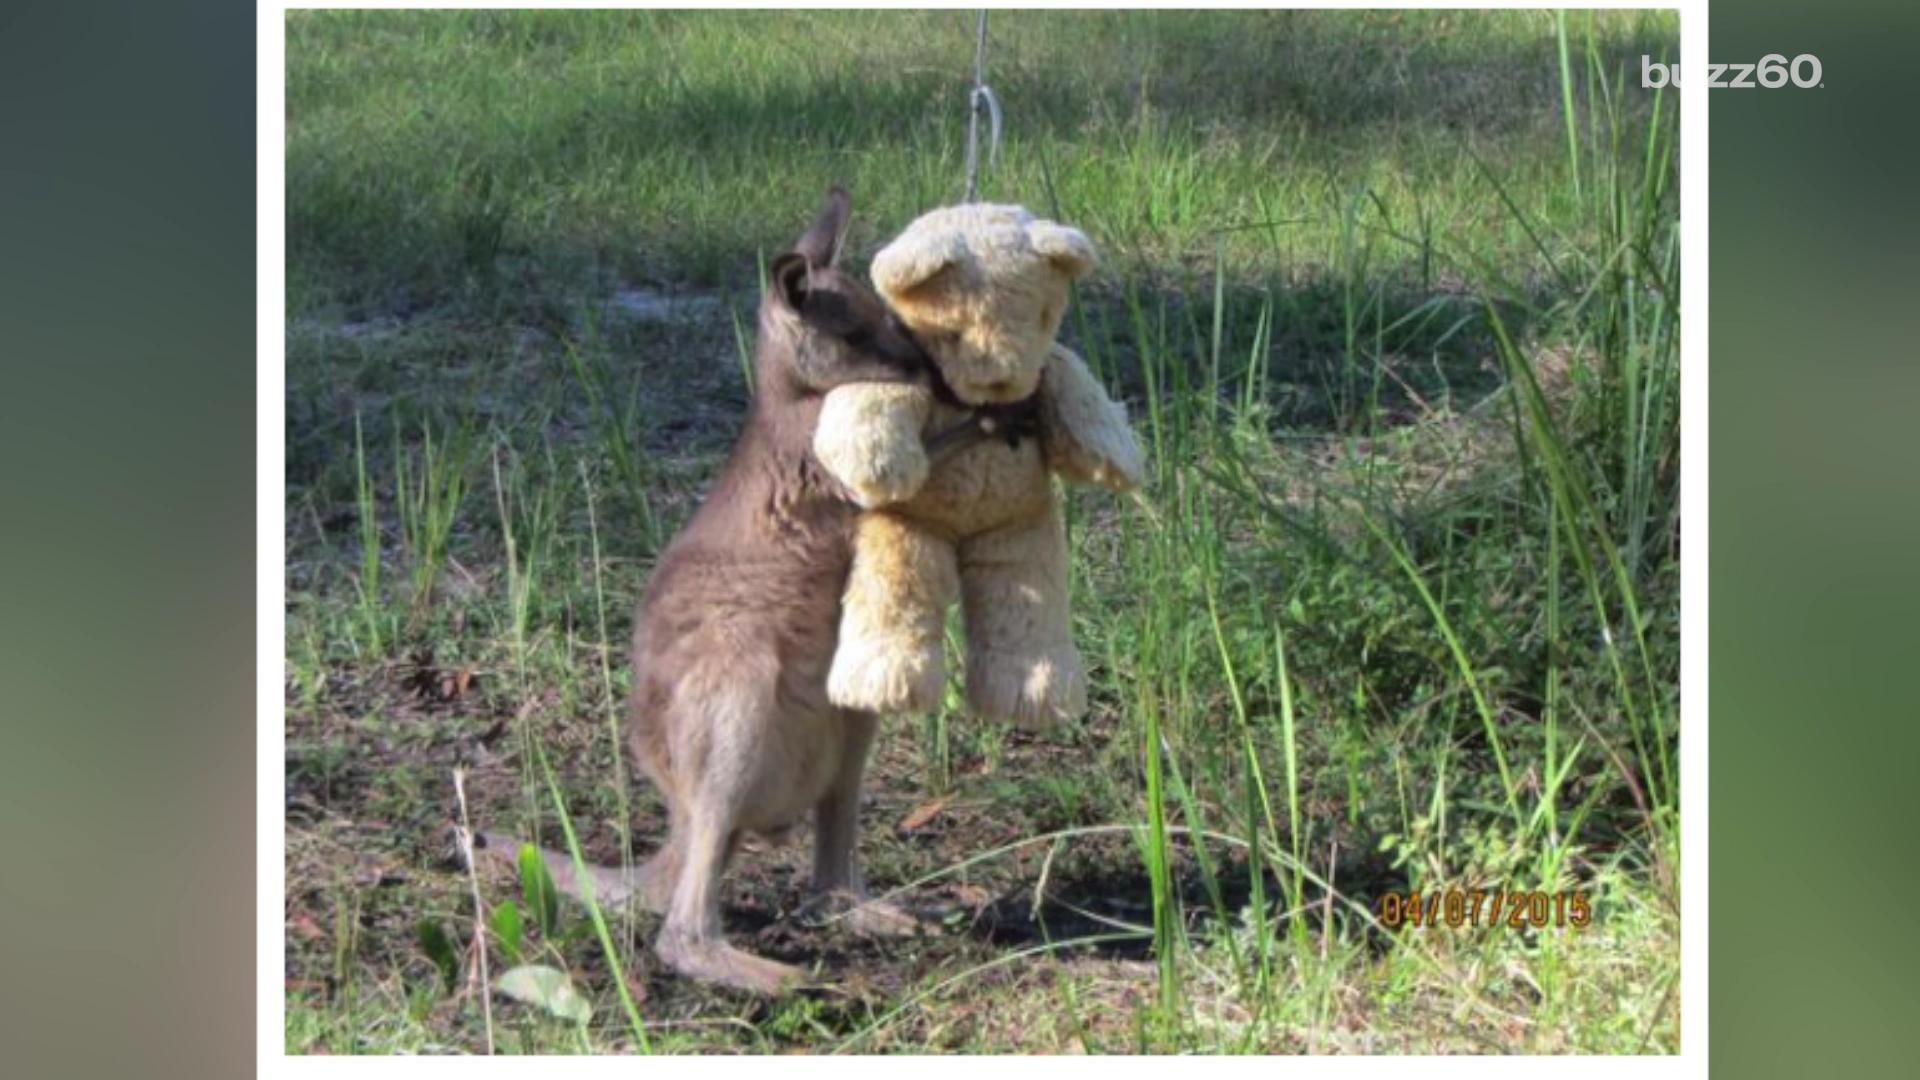 Photo of baby kangaroo snuggling a teddy bear goes viral